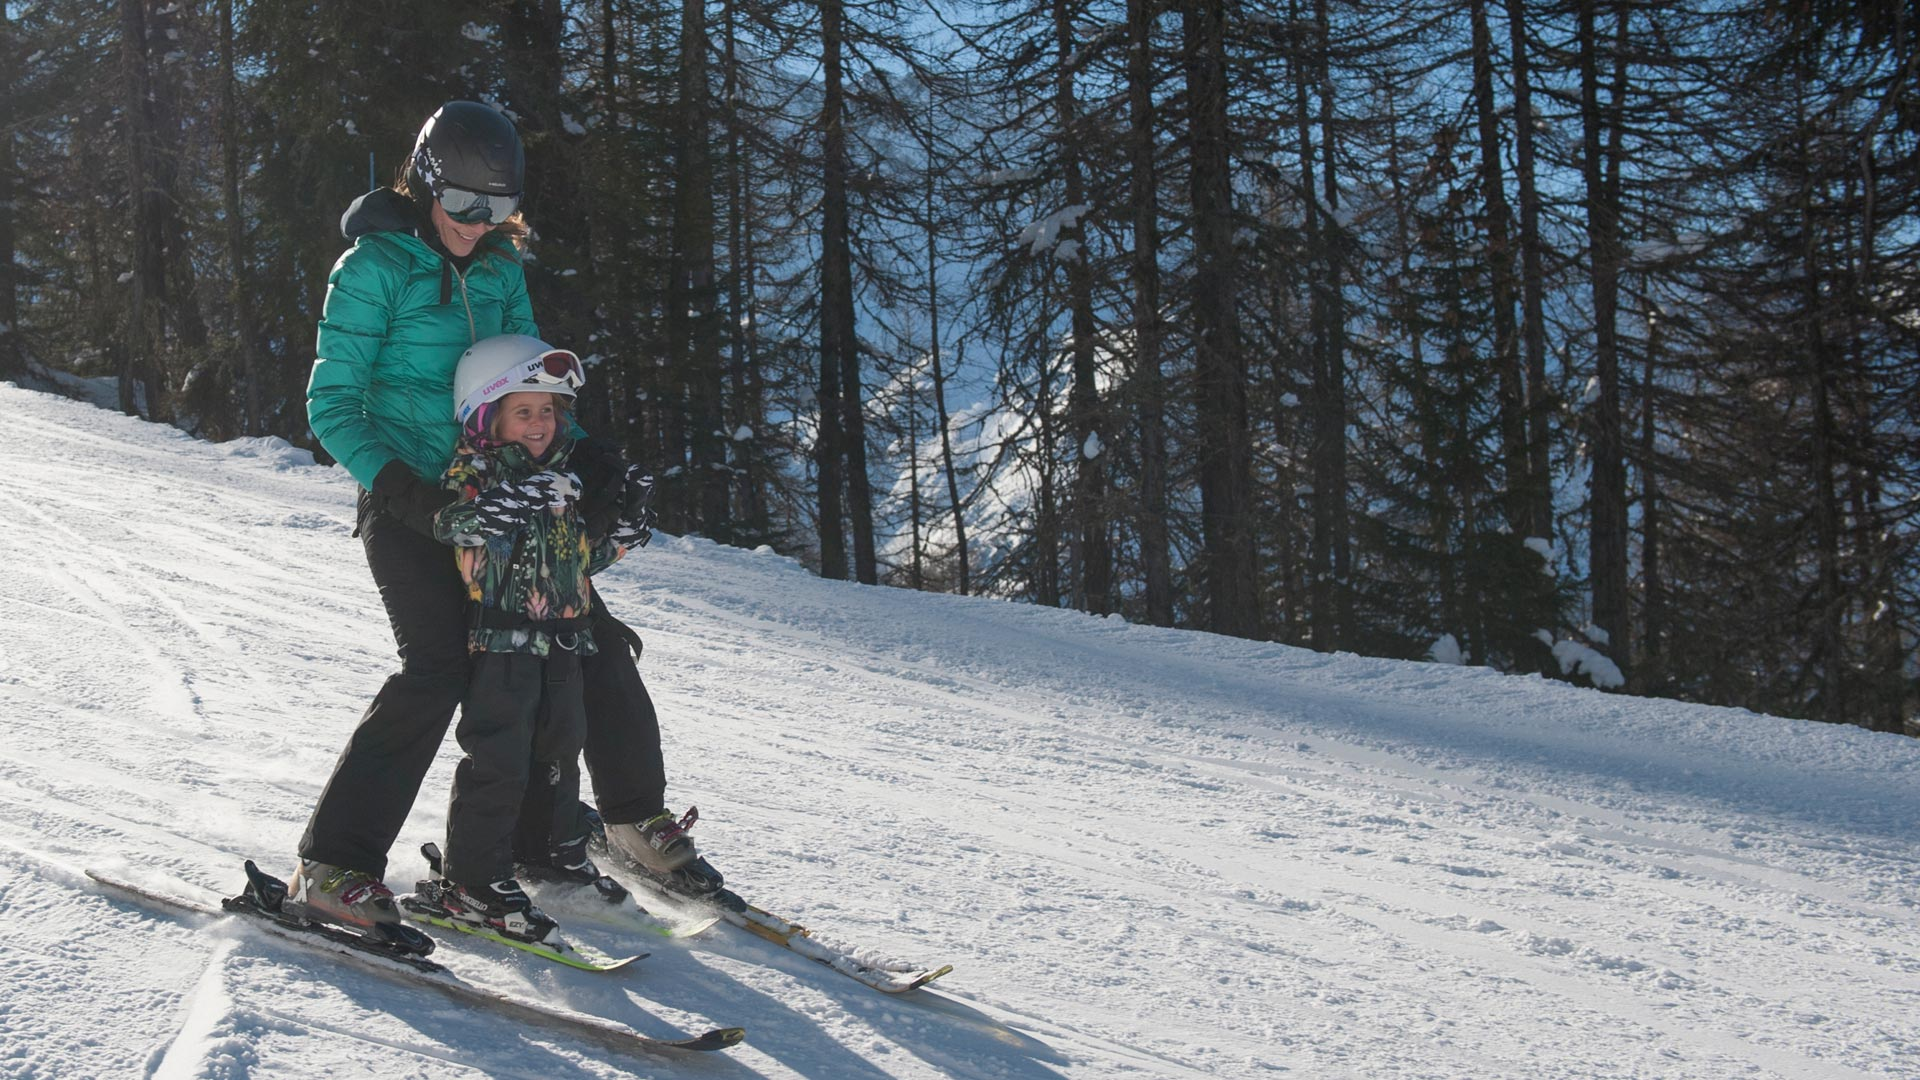 Skiing for beginners